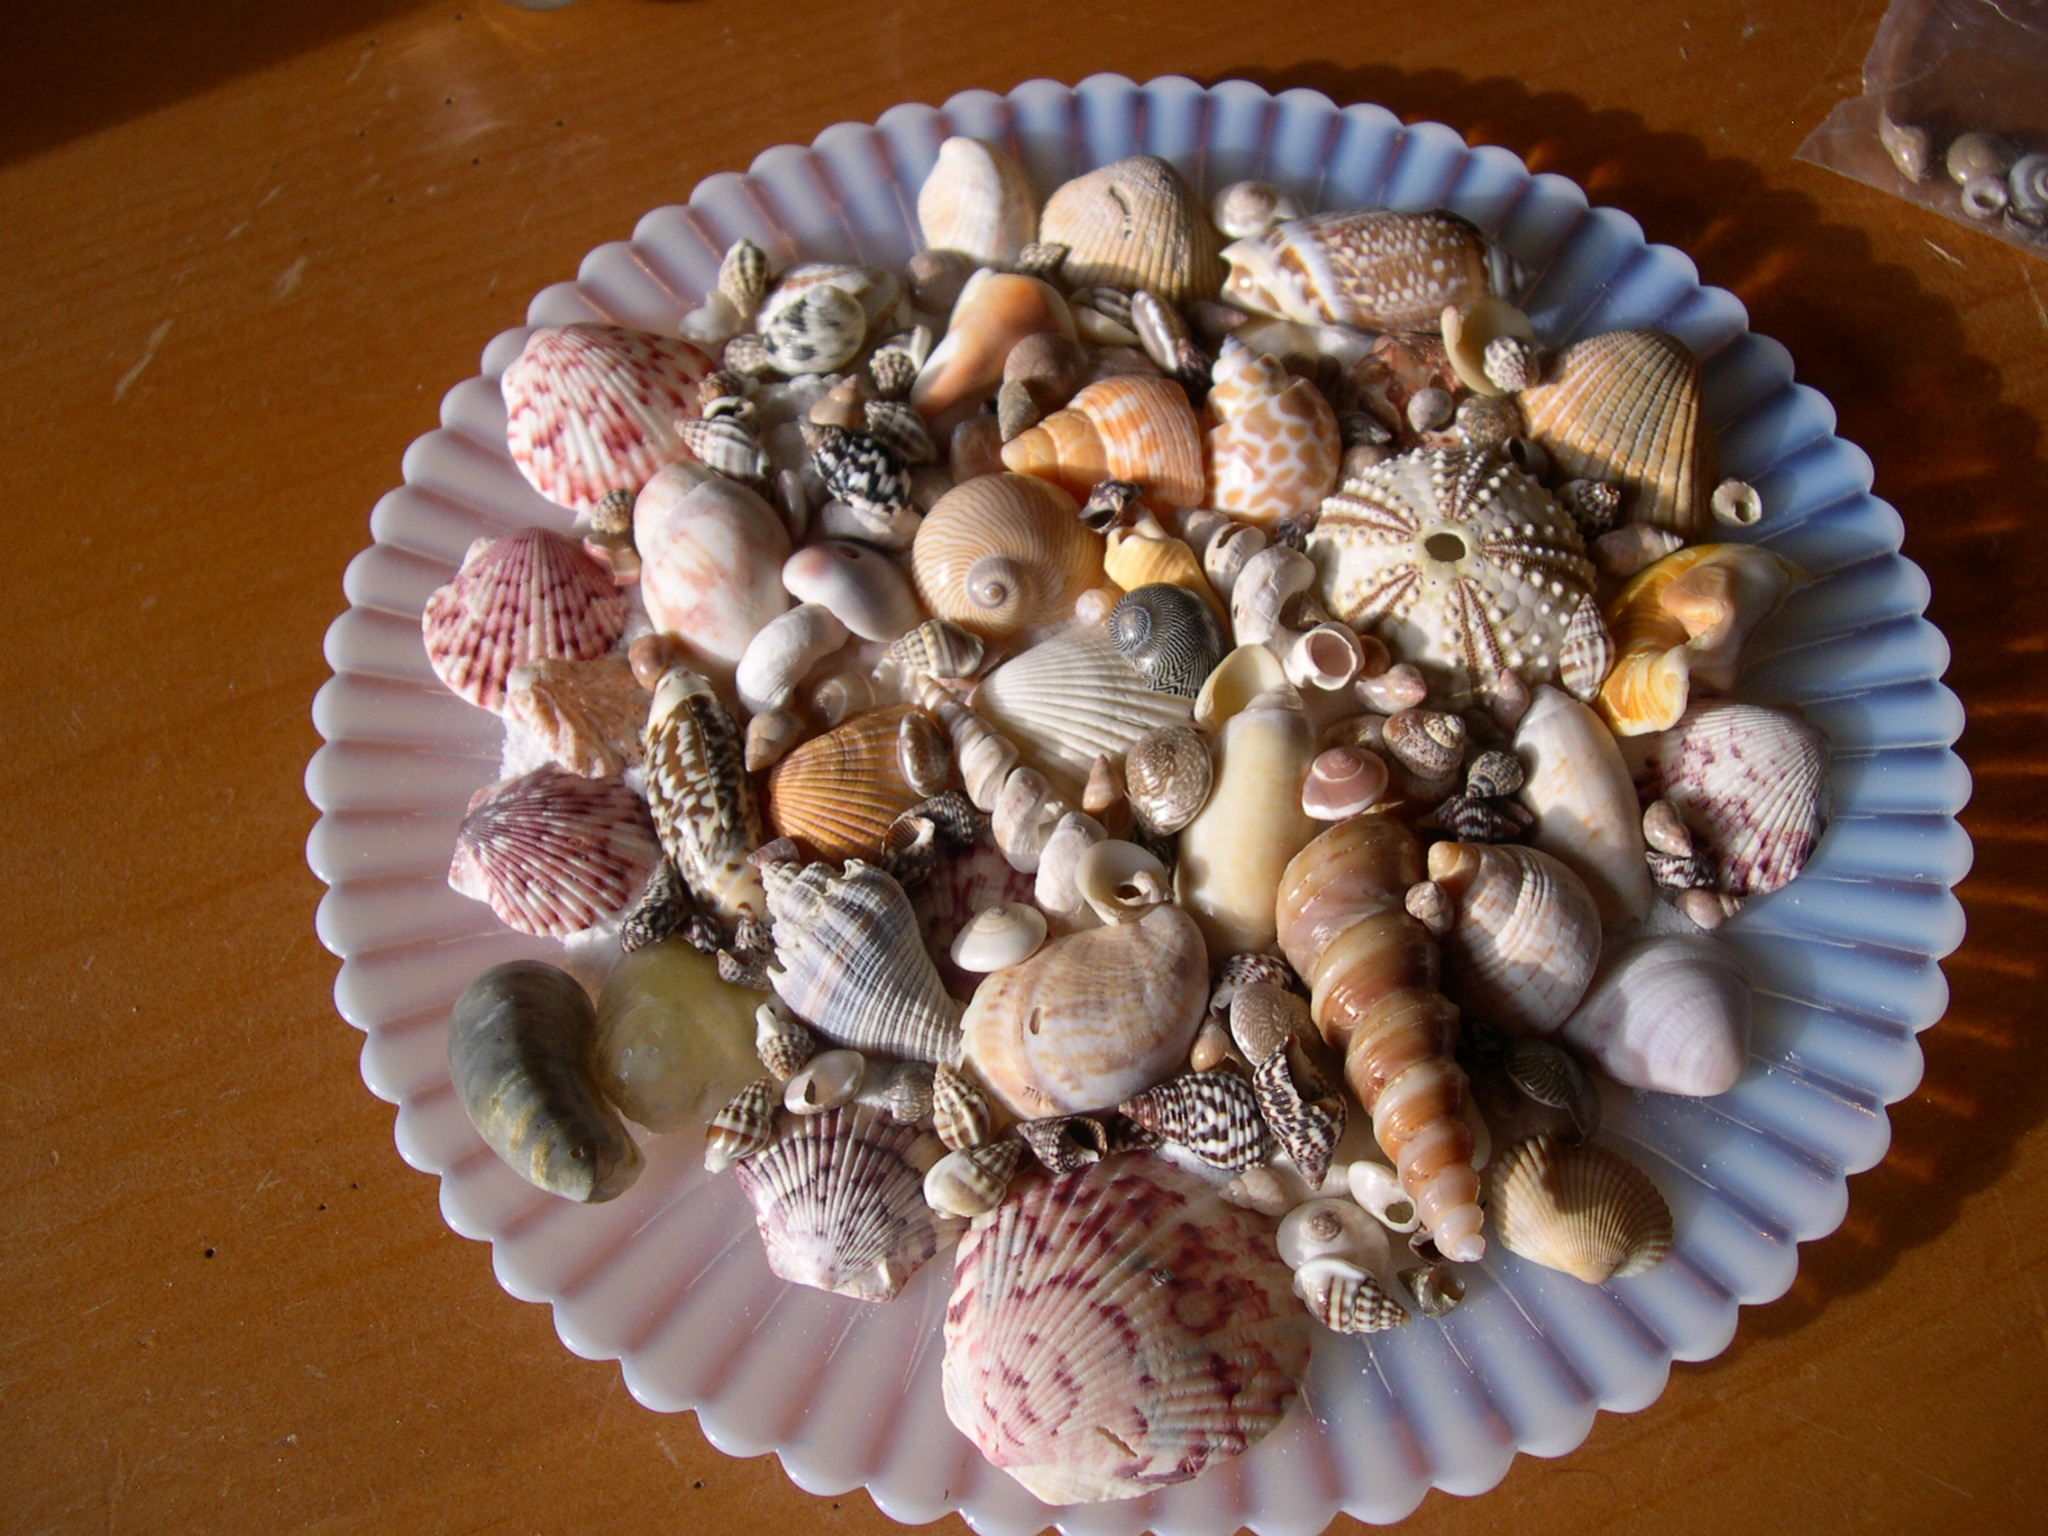 seashell collection on glass plate